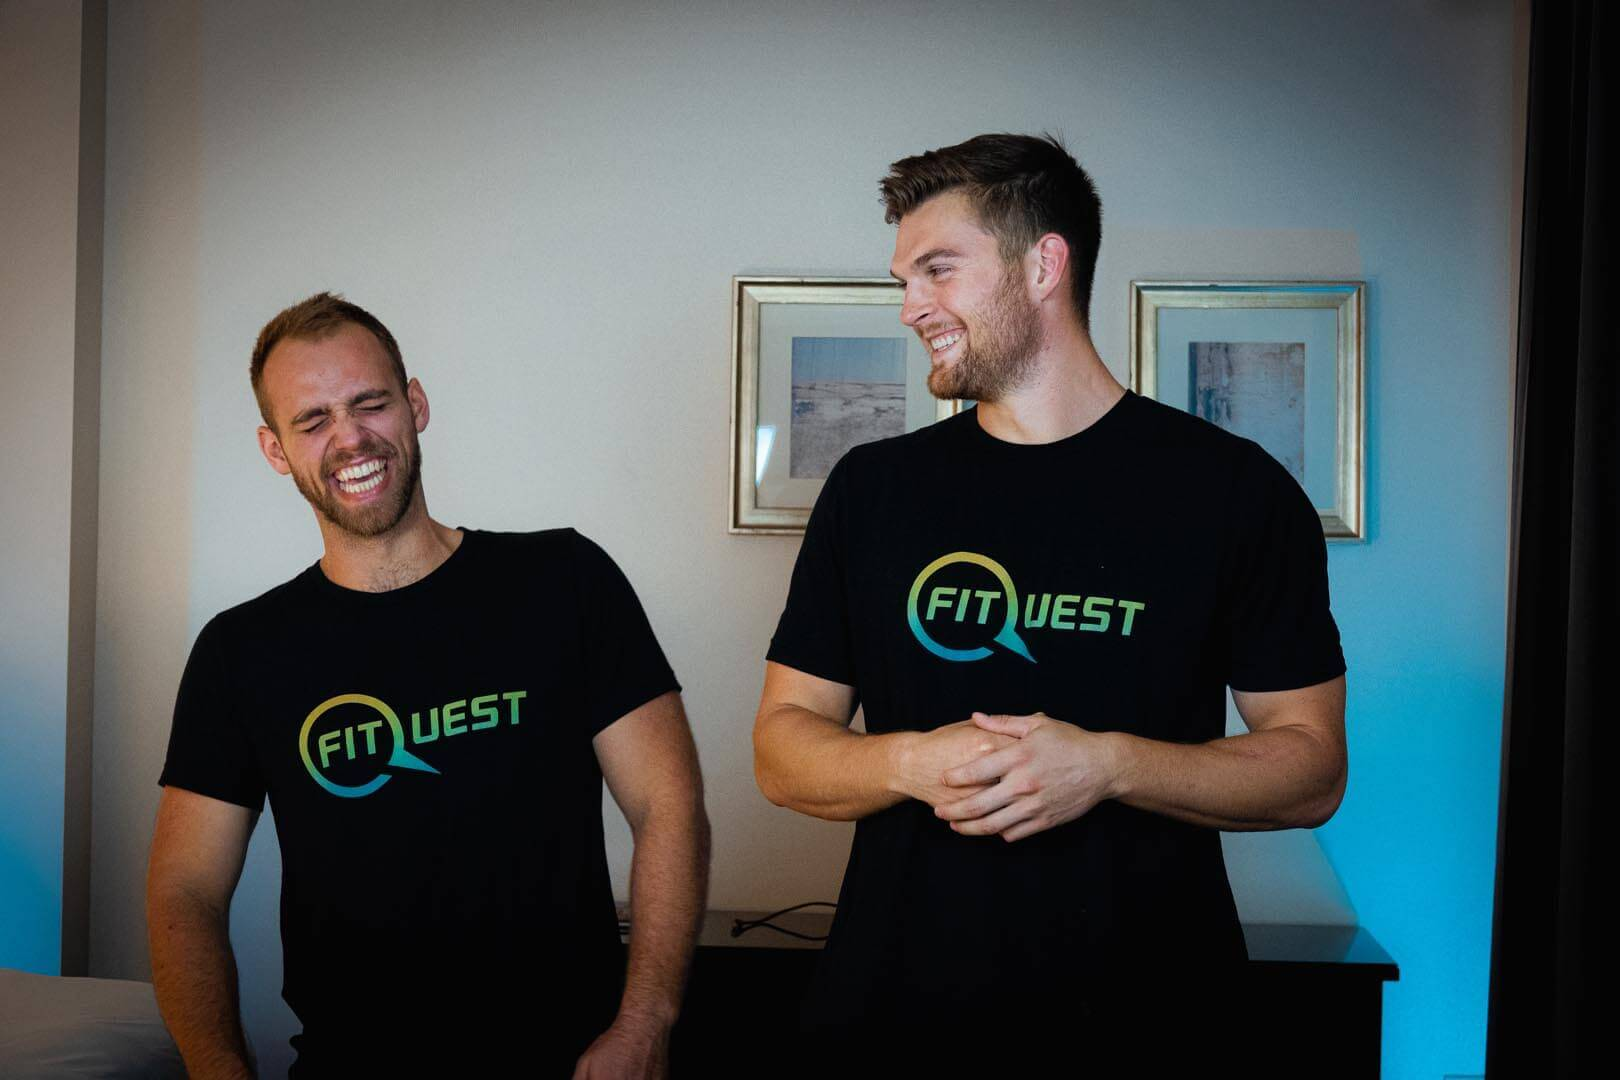 Braden Mosley and Ben Hermann laughing in a hotel room